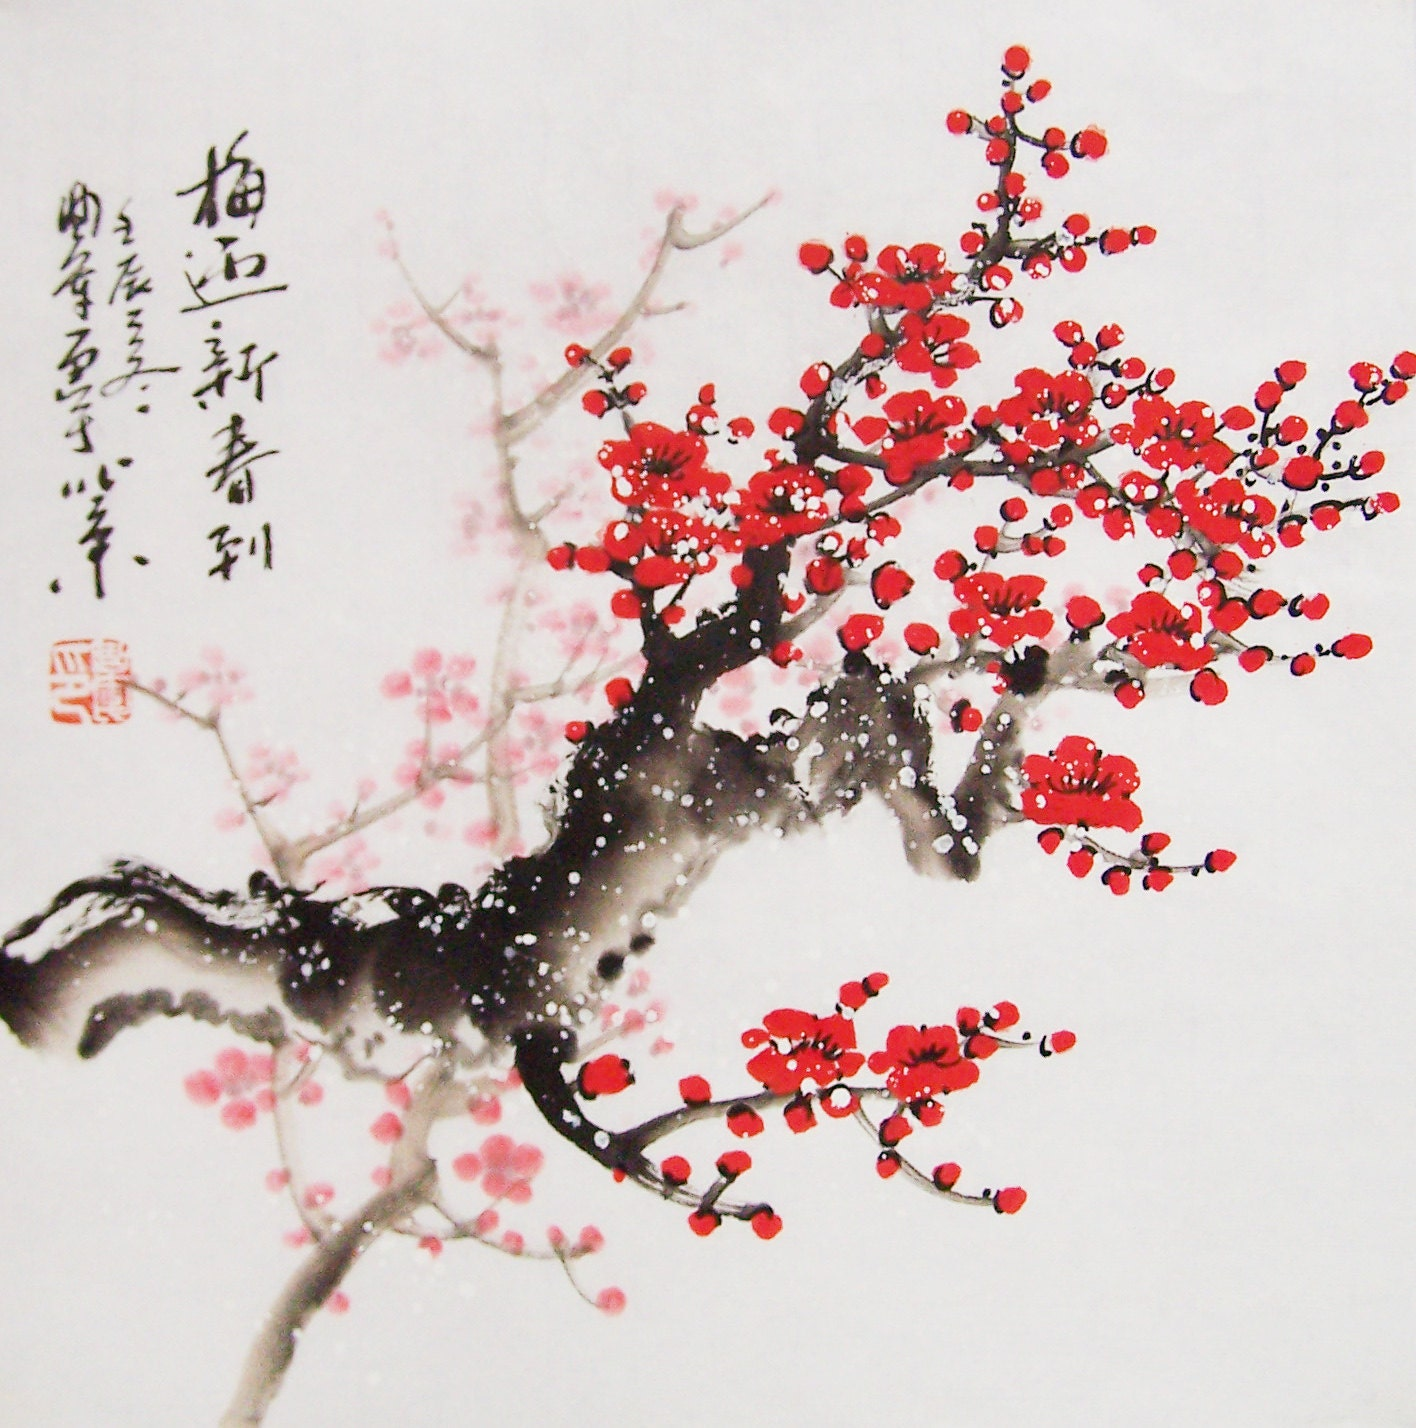 Cherry blossom paintings original chinese painting by art68 for Cherry blossom mural works